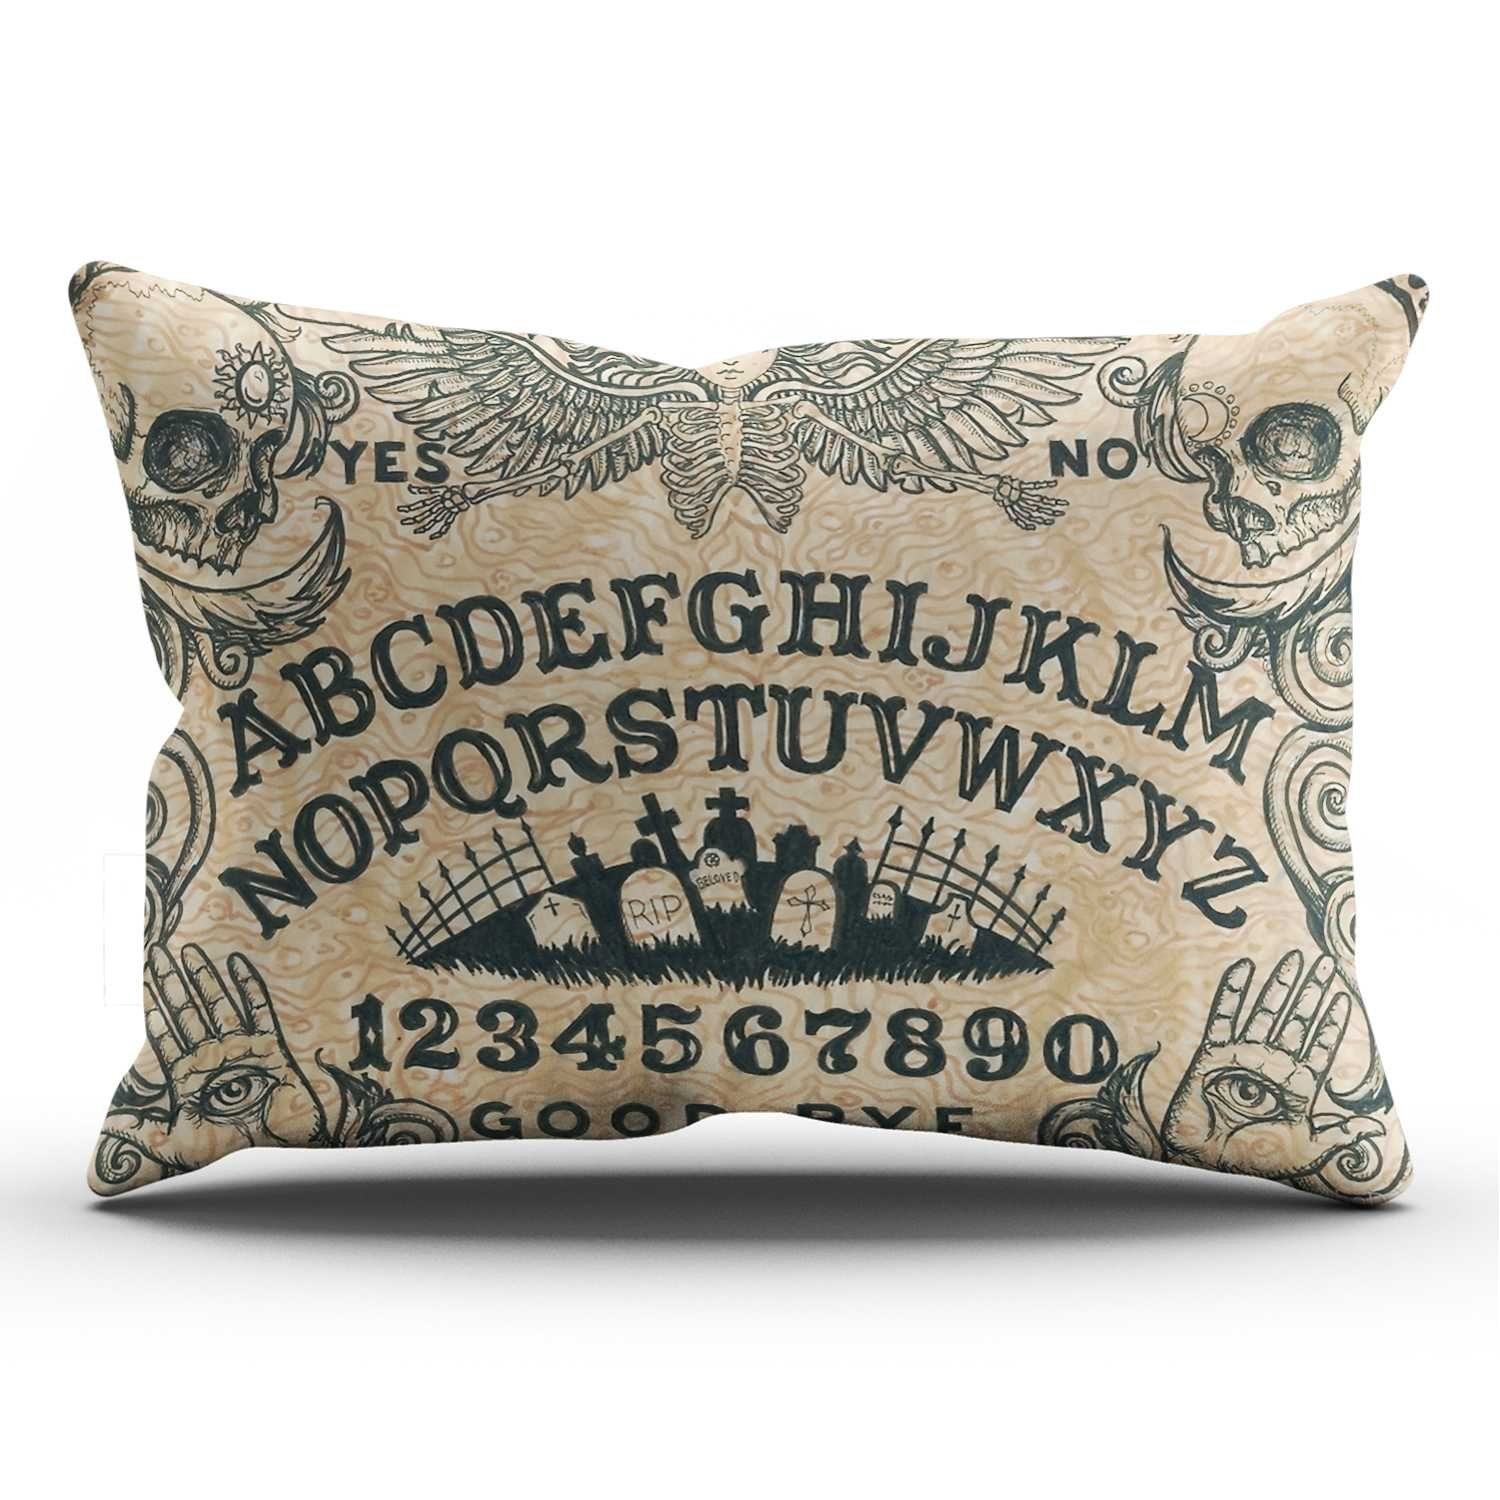 KEIBIKE Personalized Ouija Board Horror Movie Rectangle Decorative Pillowcases Funny Zippered King Pillow Covers Cases 20x36 Inches One Sided by KEIBIKE